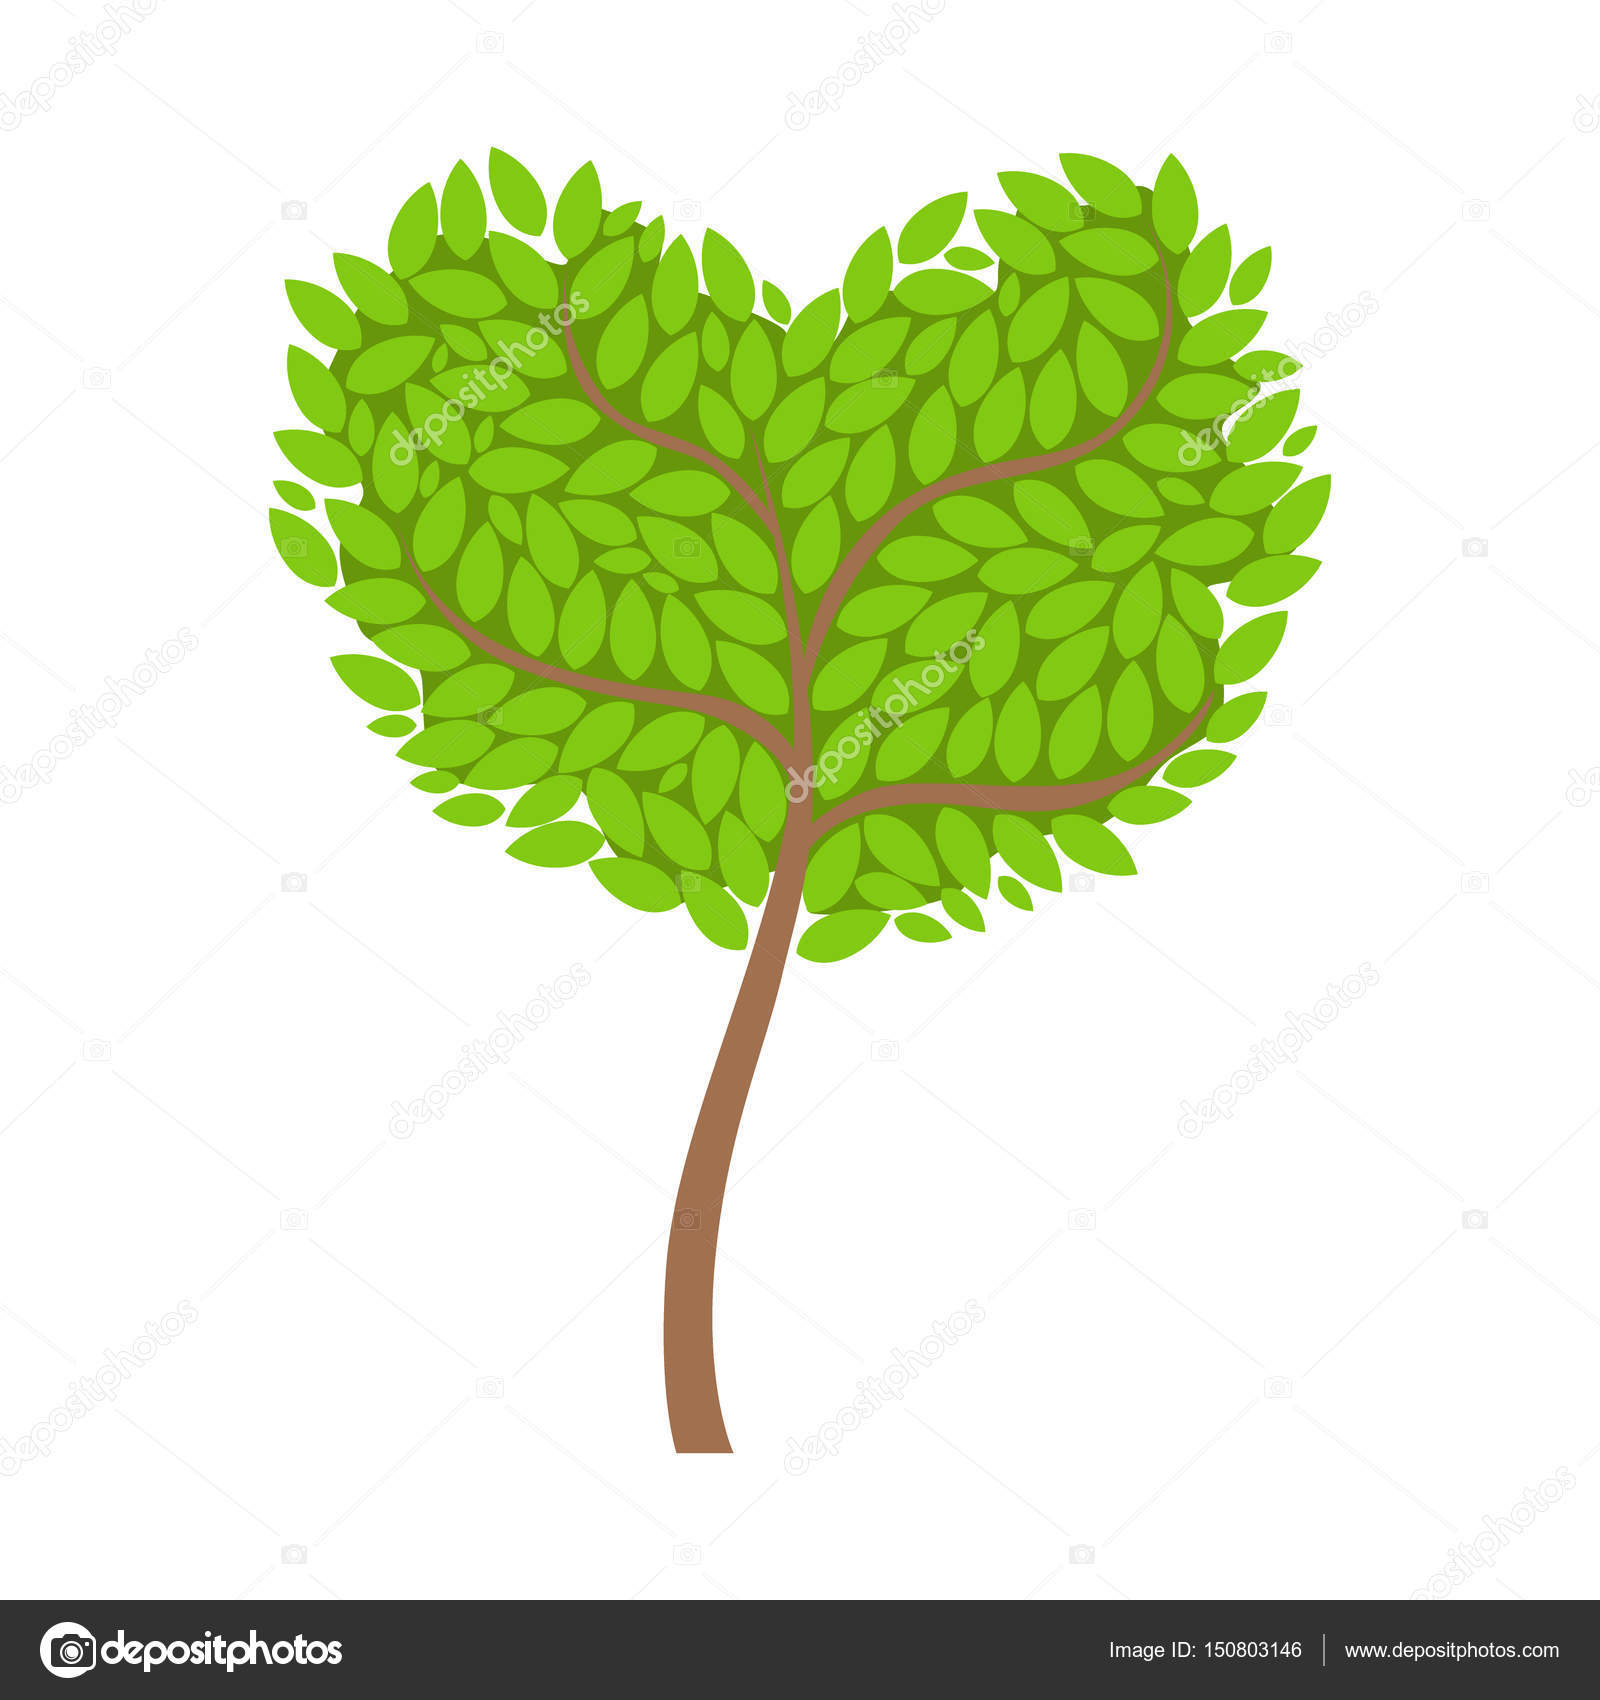 Green tree with a heart shaped crown, element of a landscape ...